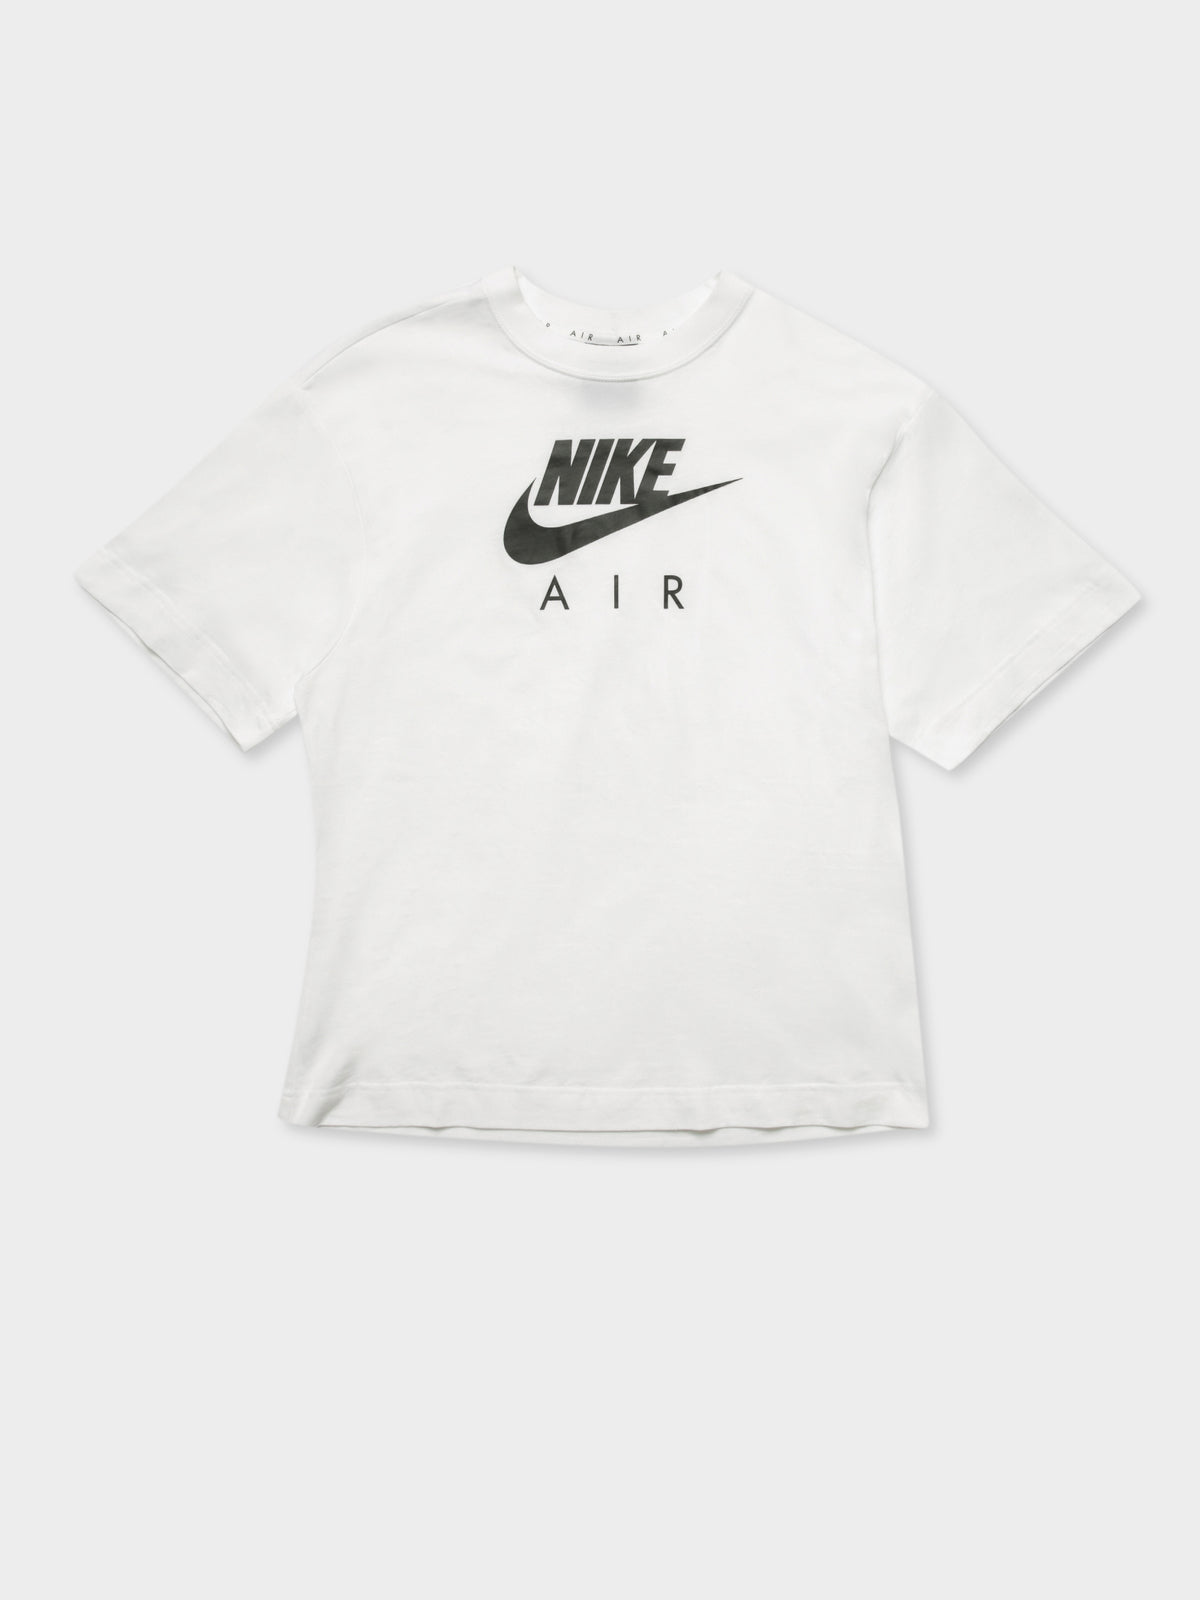 NSW Air Short Sleeve T-Shirt in White